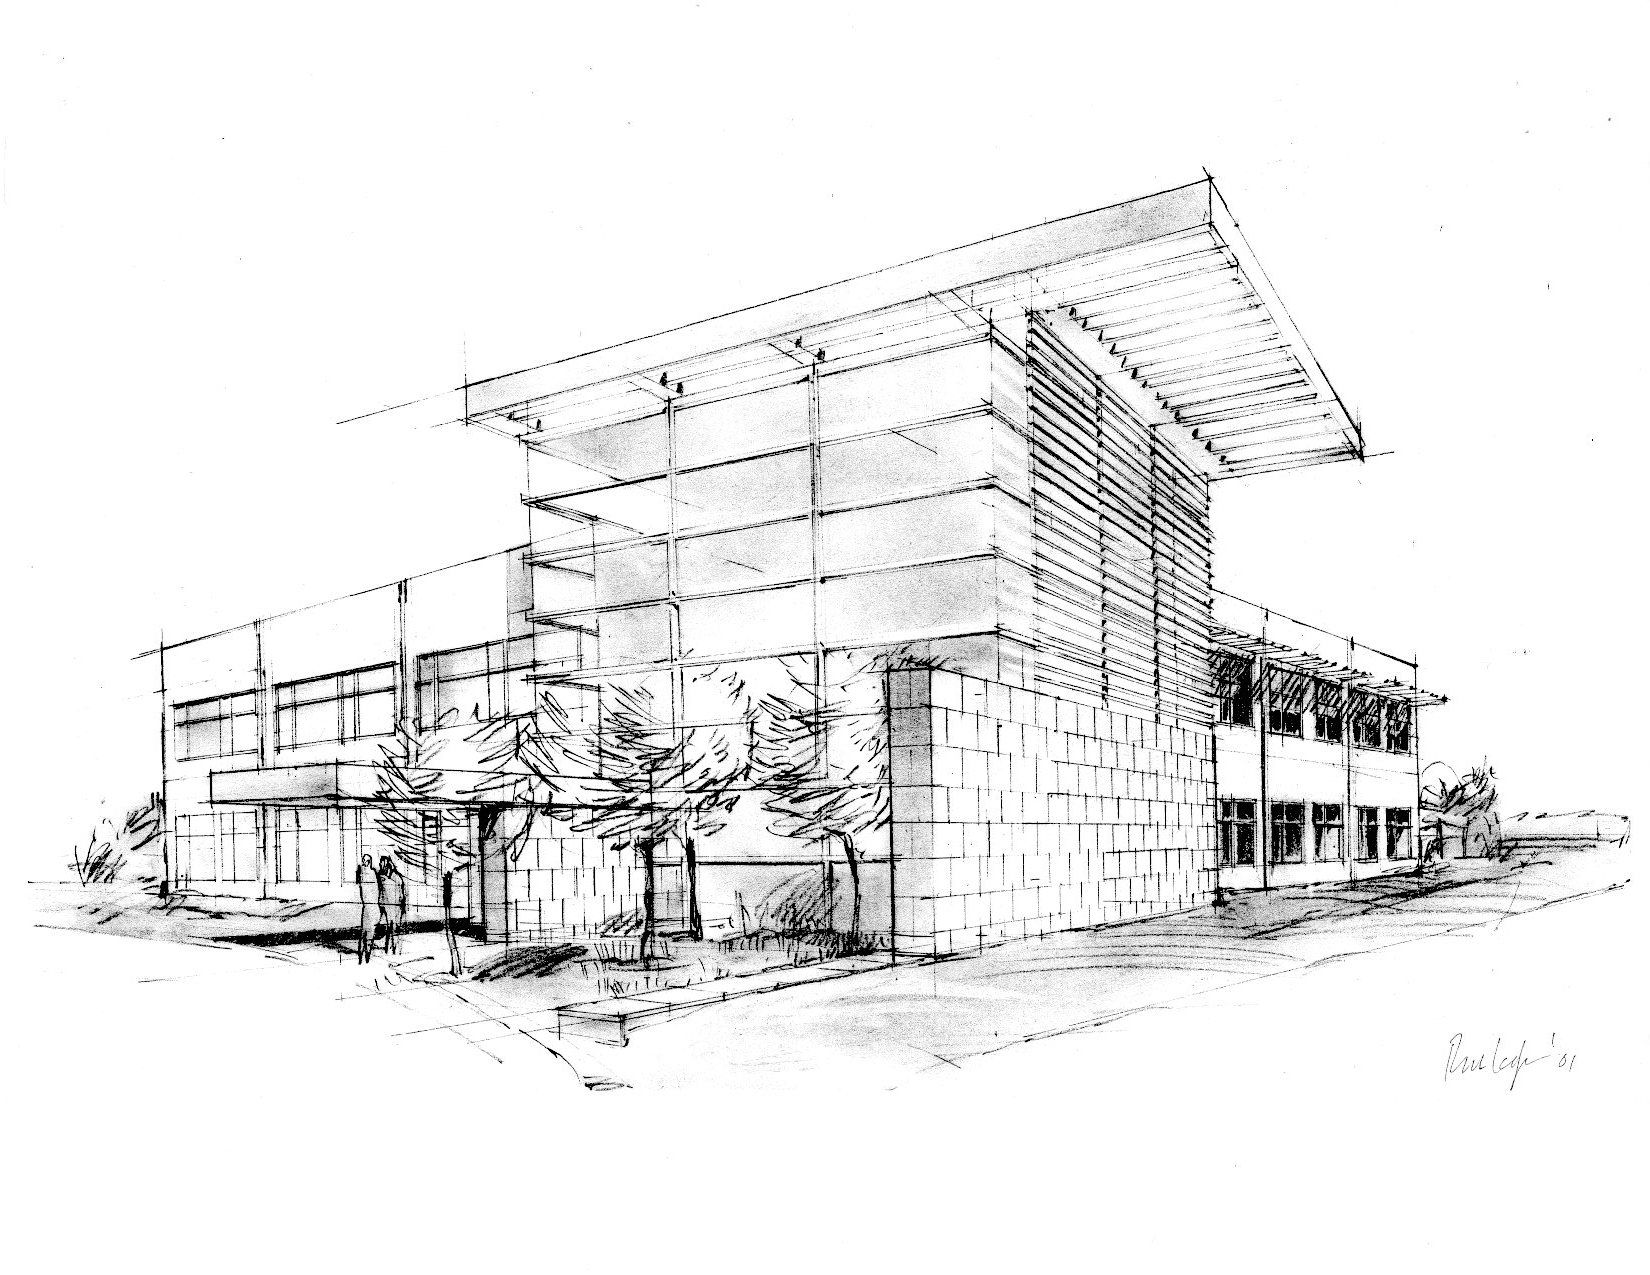 Beautiful building design sketches with pencil sketch of House cad drawings